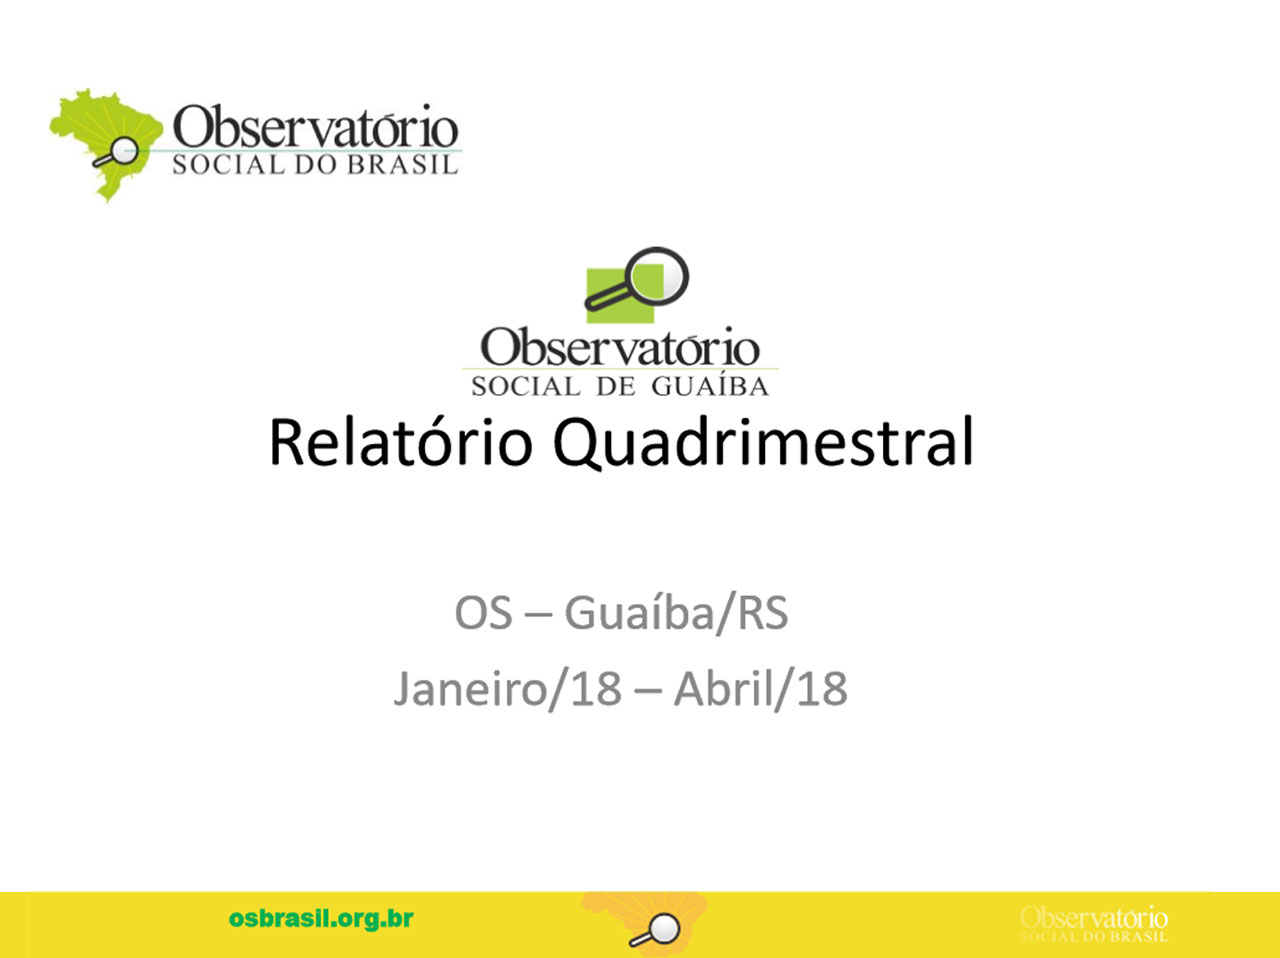 relatorio-quadrimestral-jan-abril-2018